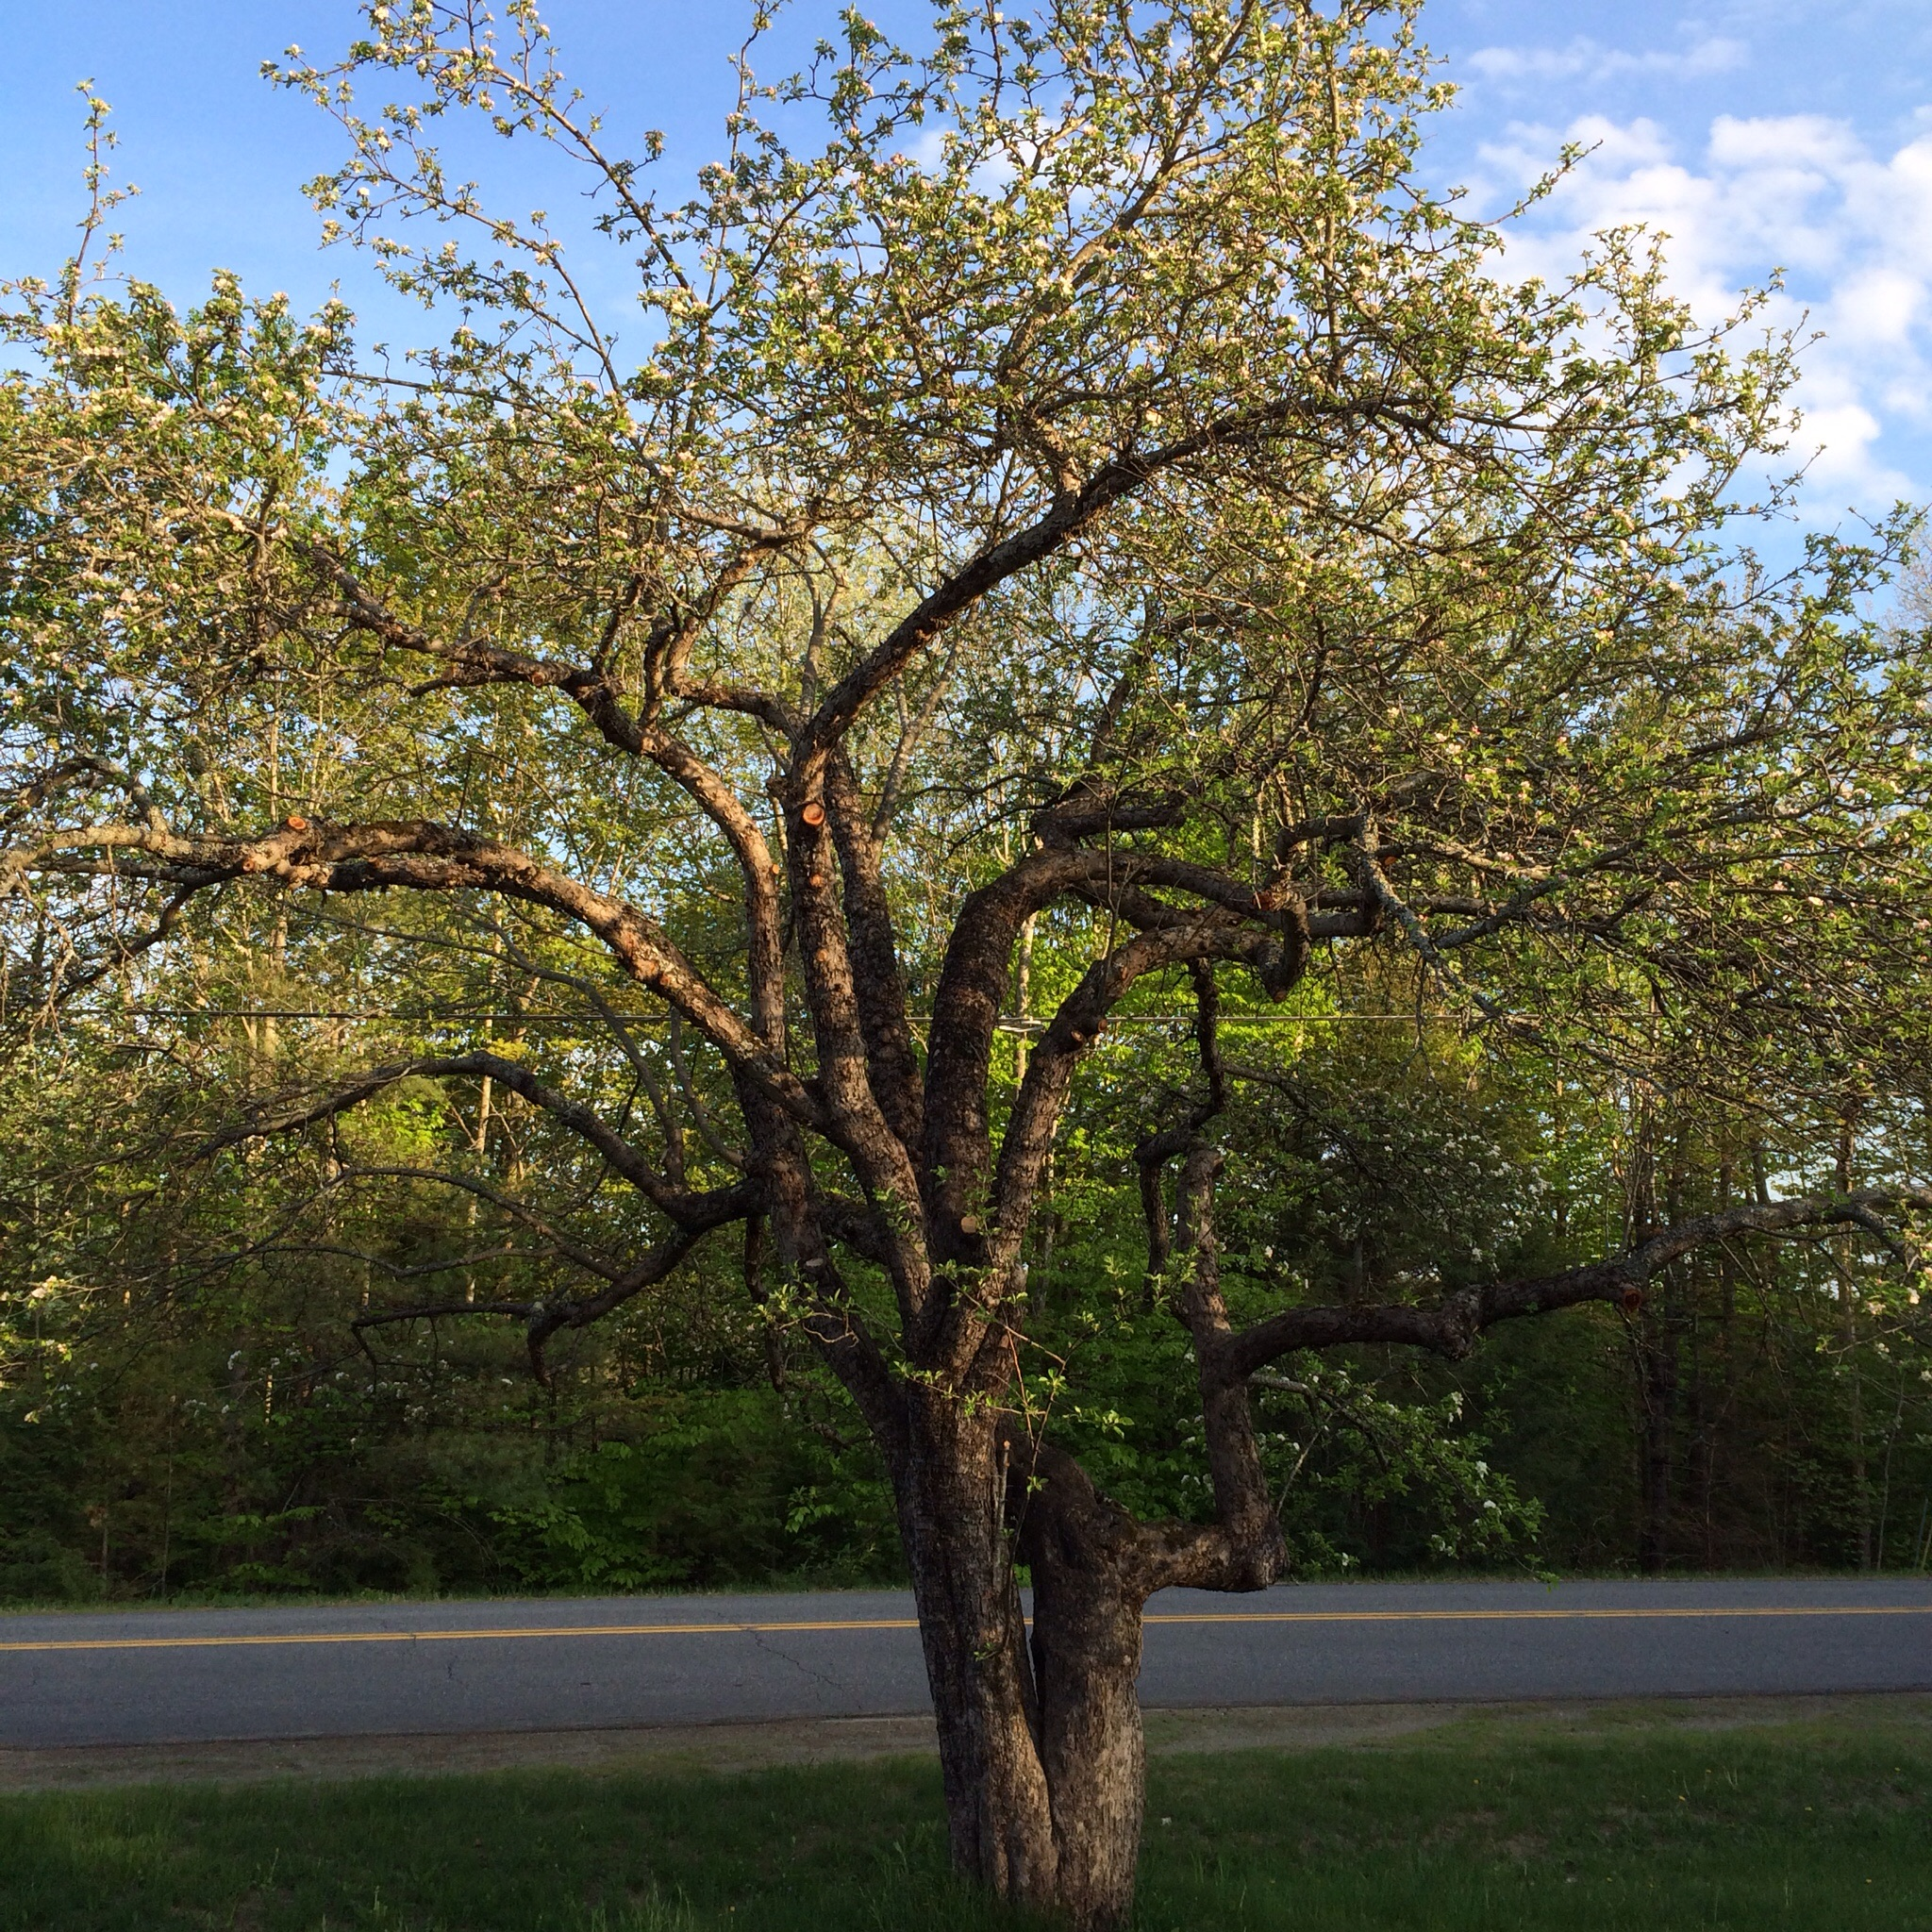 Old trees are beautiful trees. We'll be shaping/renovating the Nodhead incrementally over the next few years as it likely went unpruned for a long time.